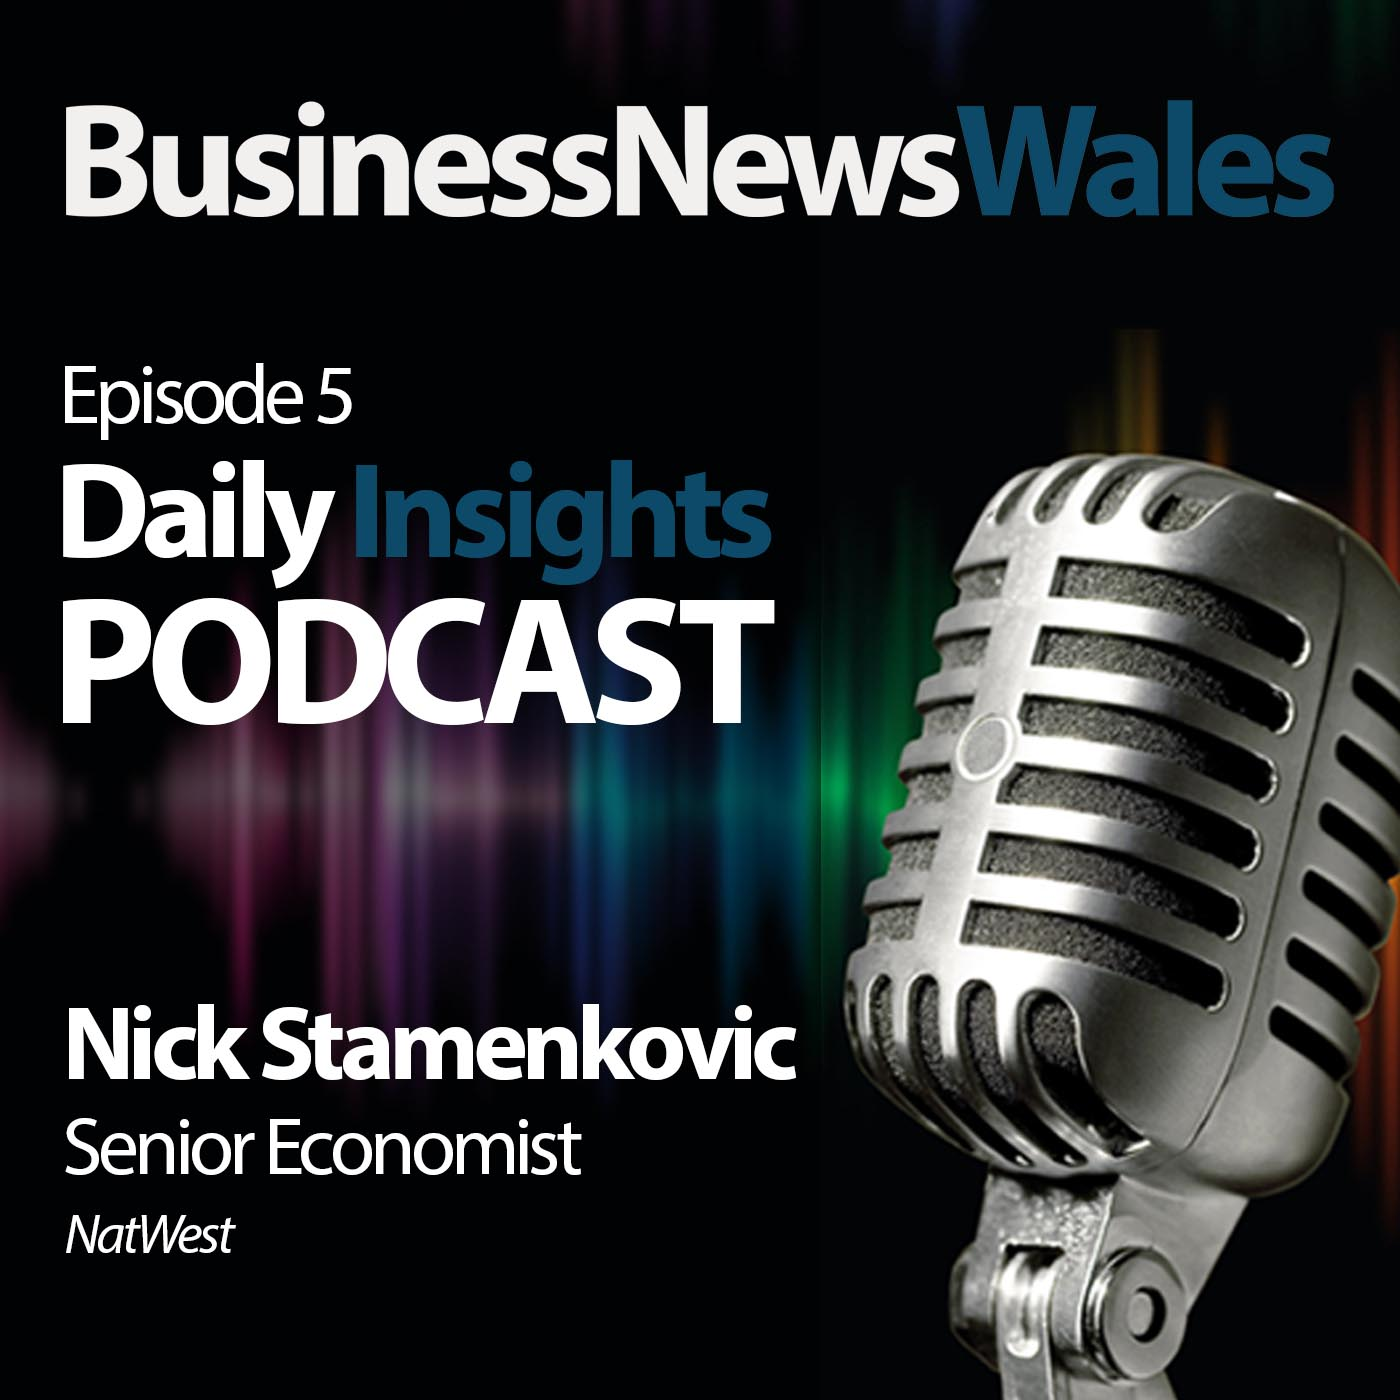 <strong>Daily Insights Podcast</strong></br> Nick Stamenkovic, Senior Economist at NatWest